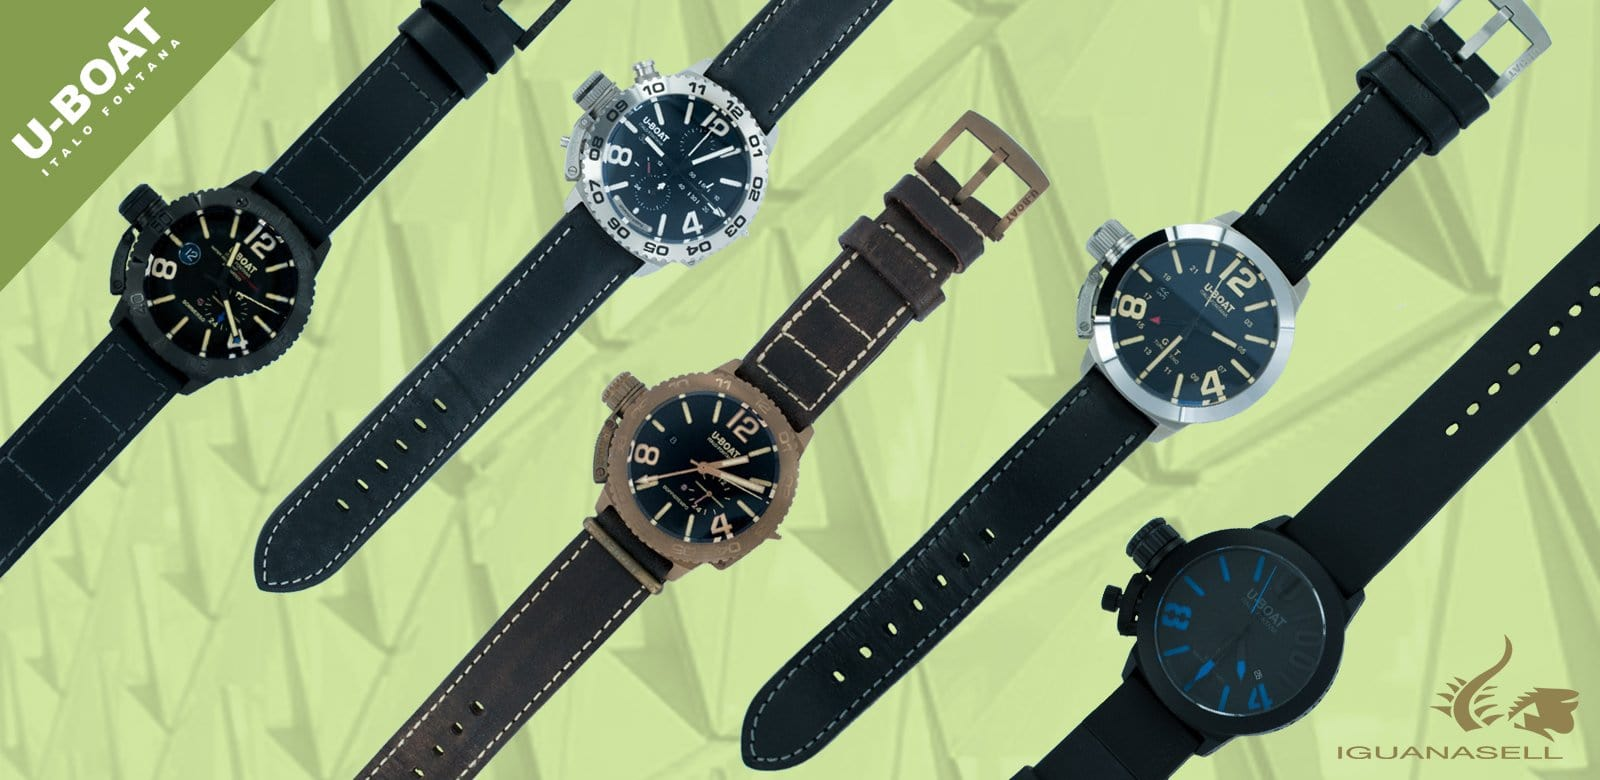 uboat special edition automatic watches